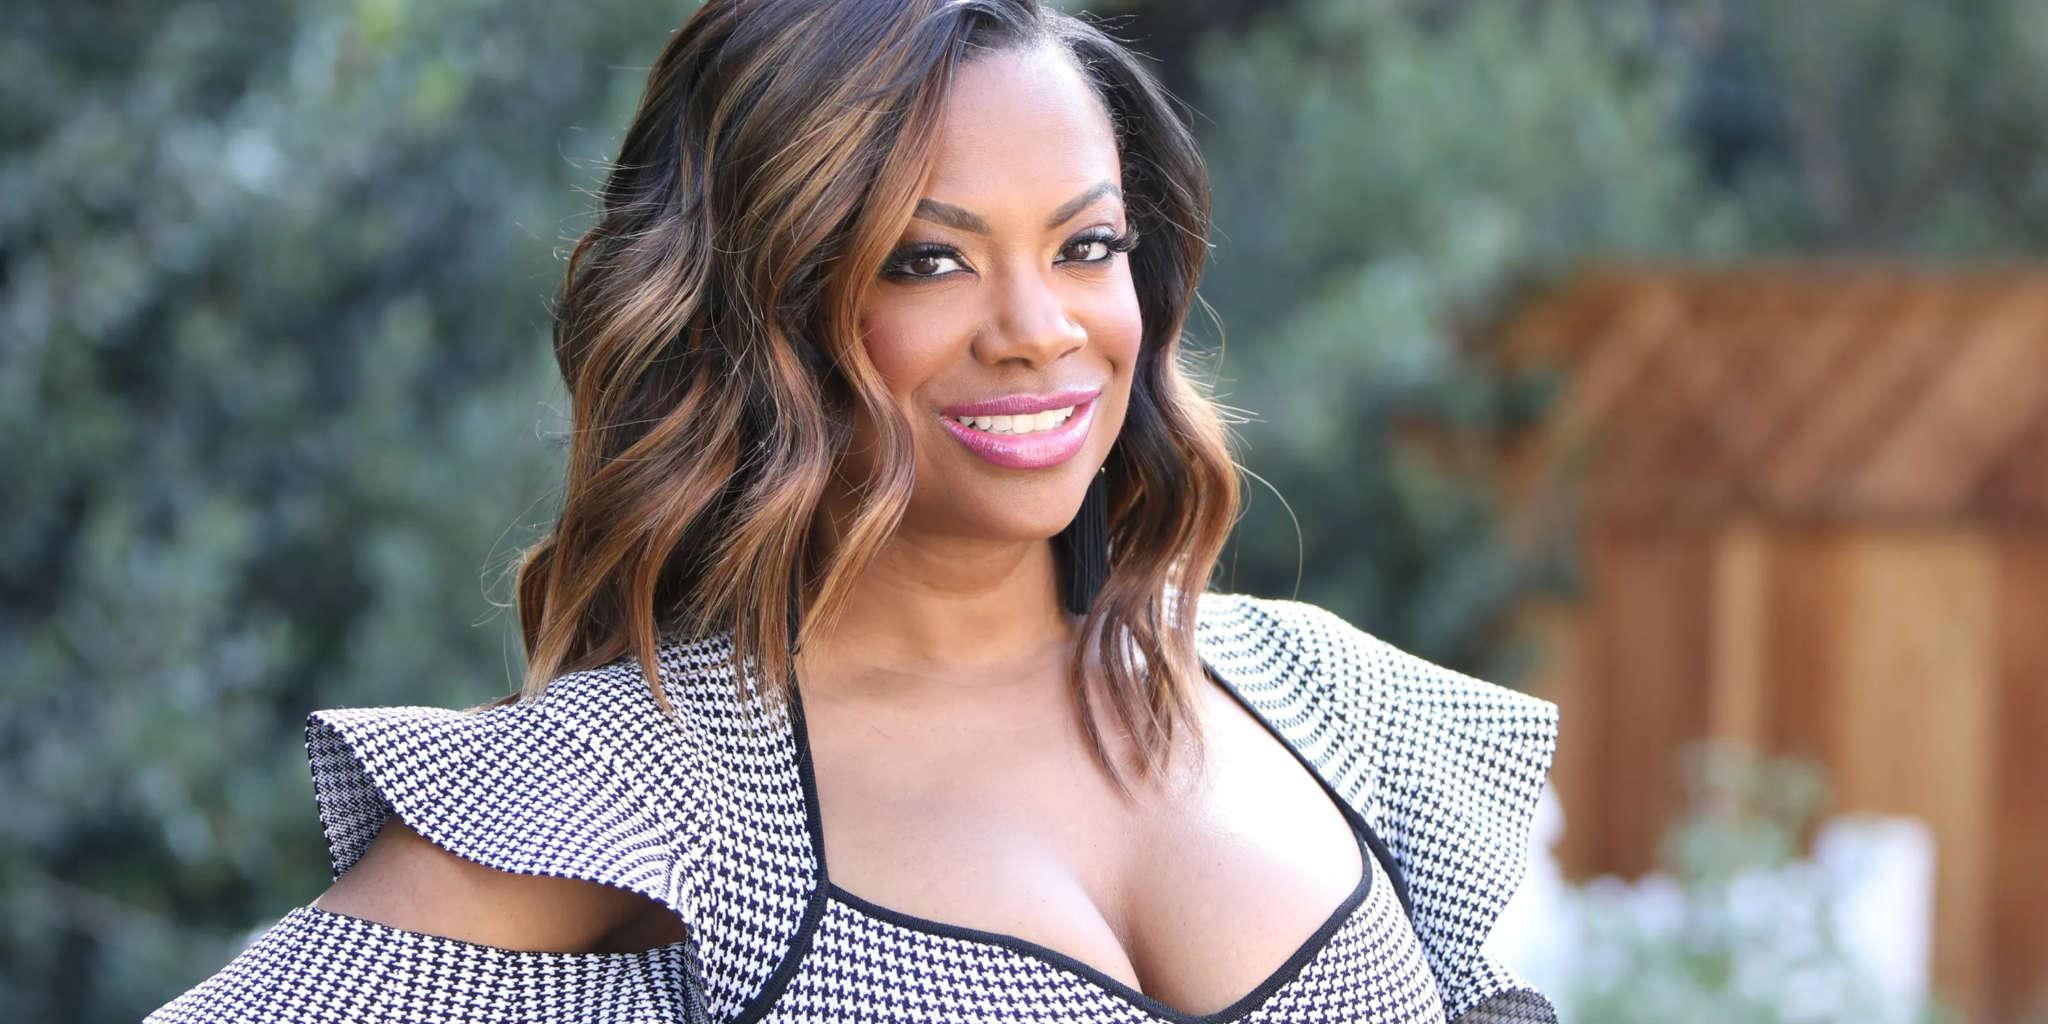 Kandi Burruss Has A New 'Speak On It' Episode Out On YouTube - See It Here